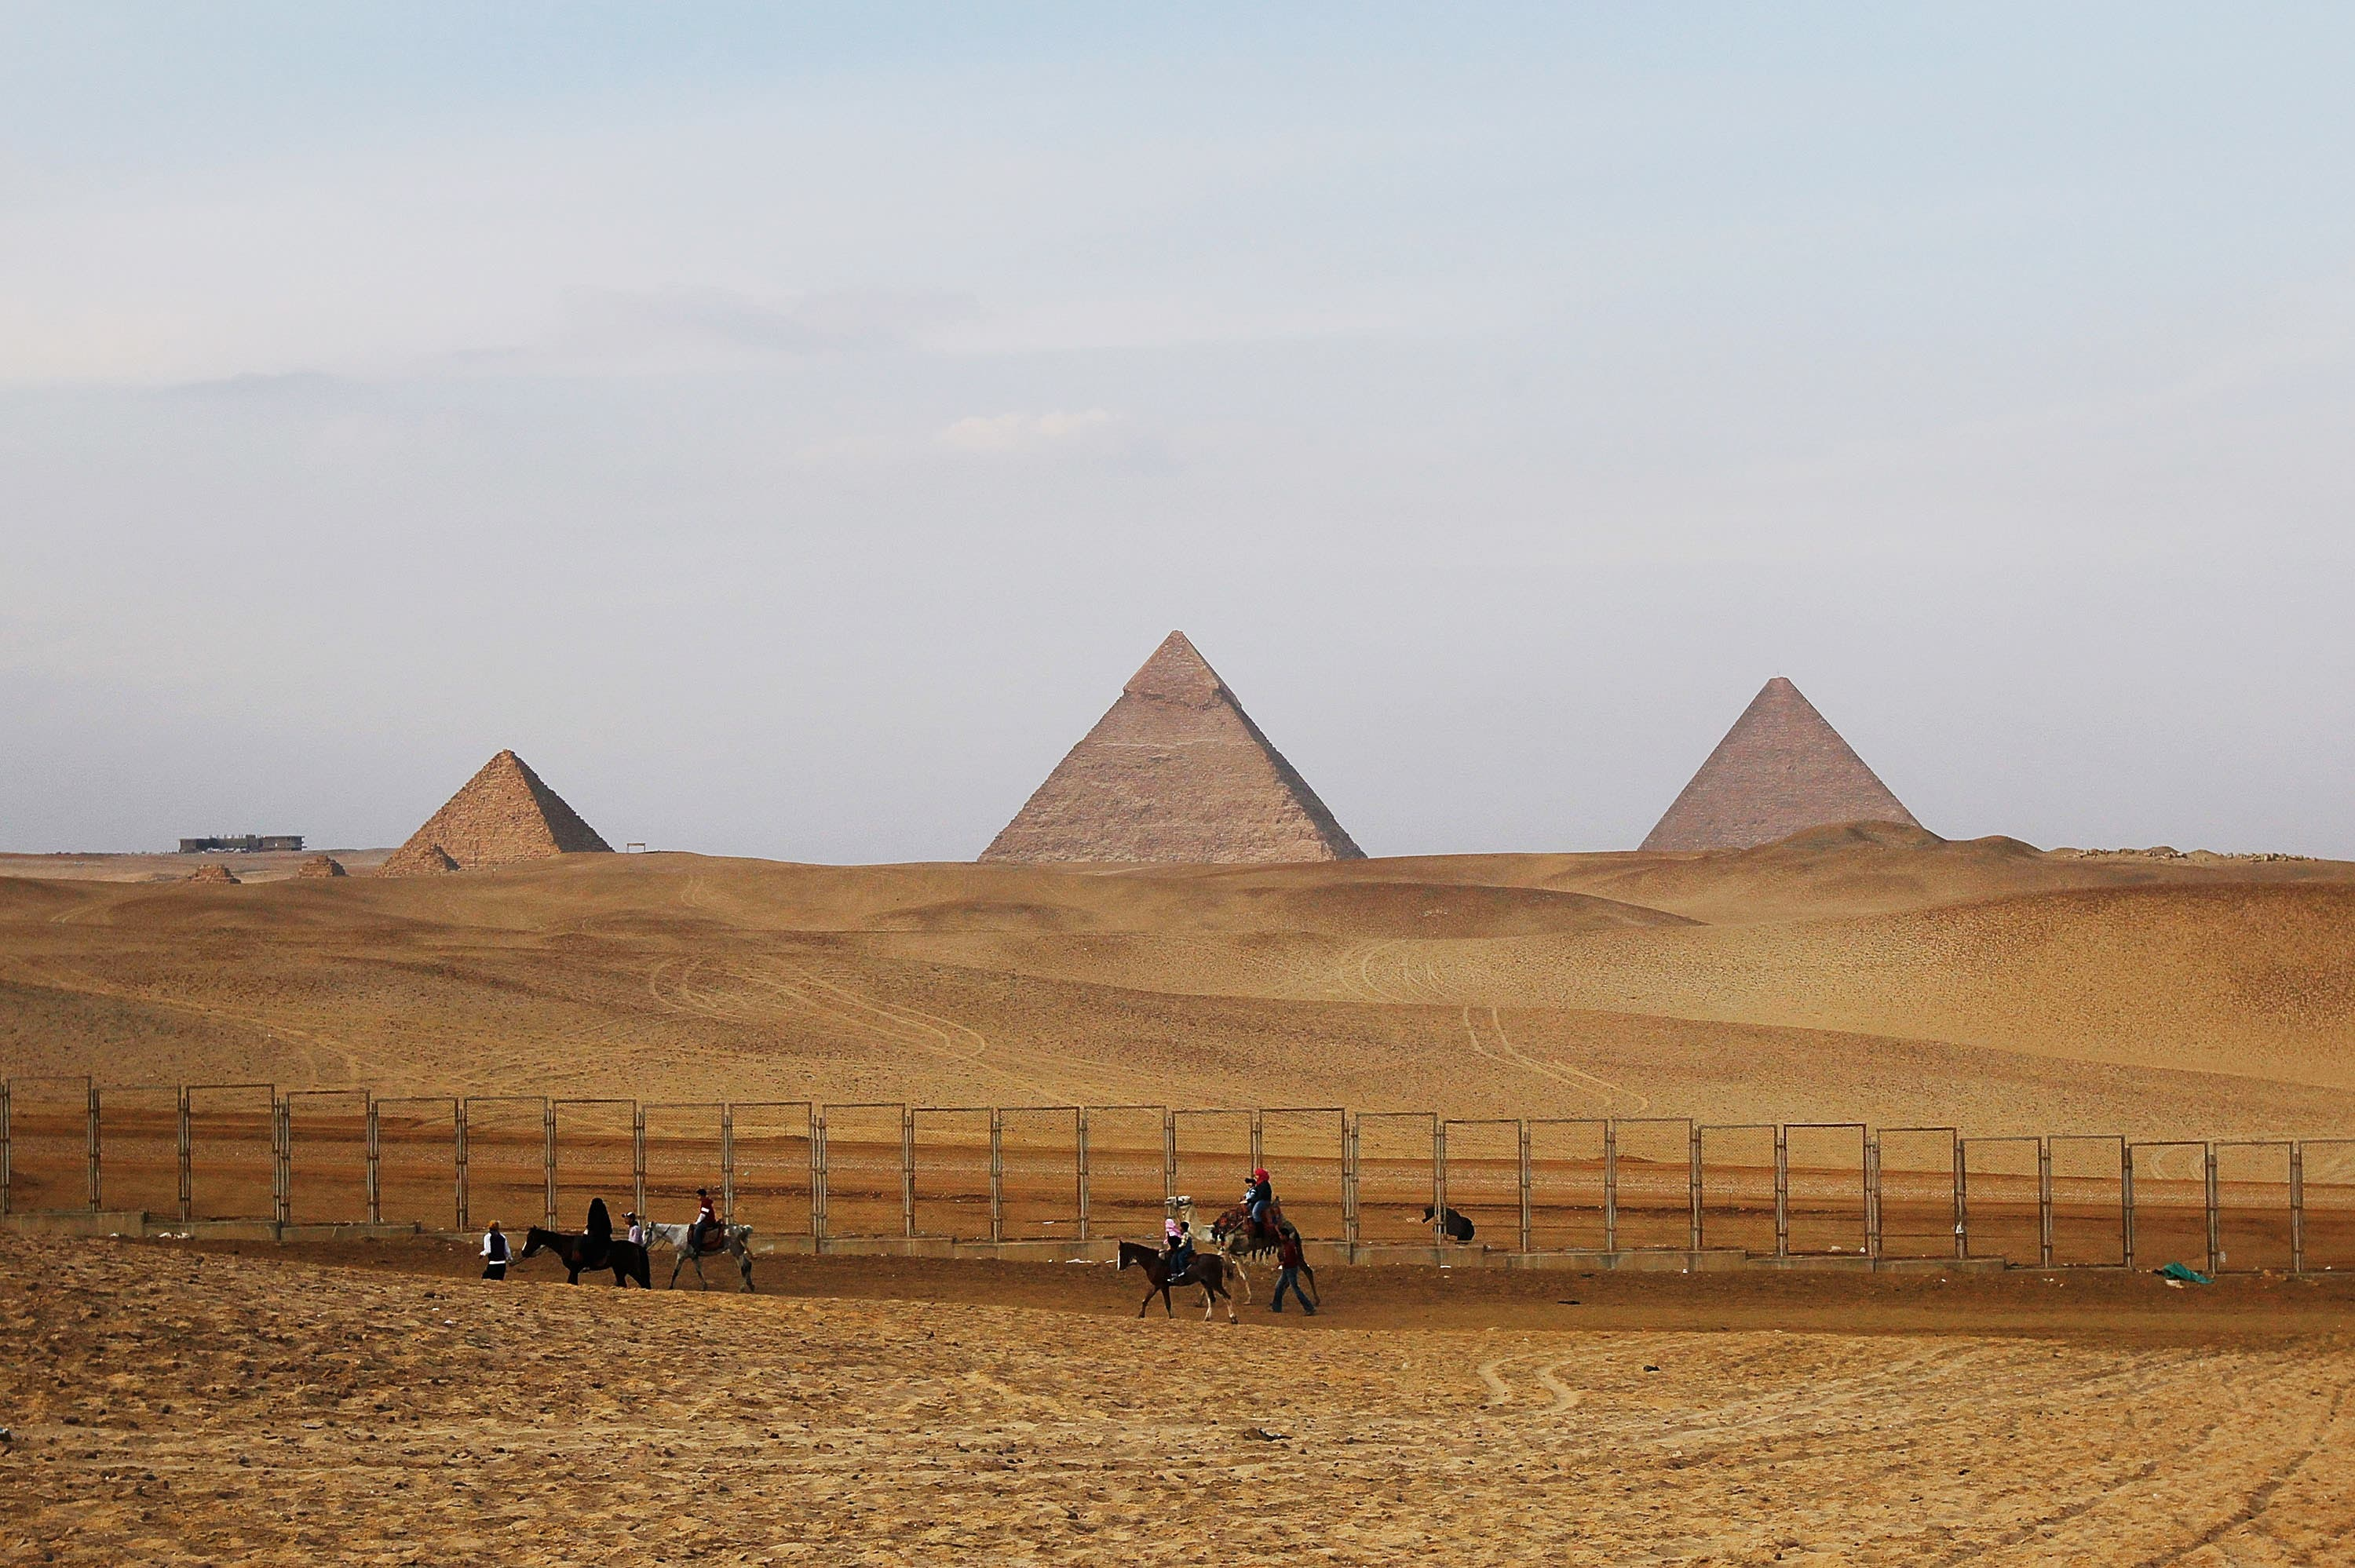 Desolate Pyramids: The revolt-- whether the tourist guides backed it or not-- has temporarily harmed their trade.